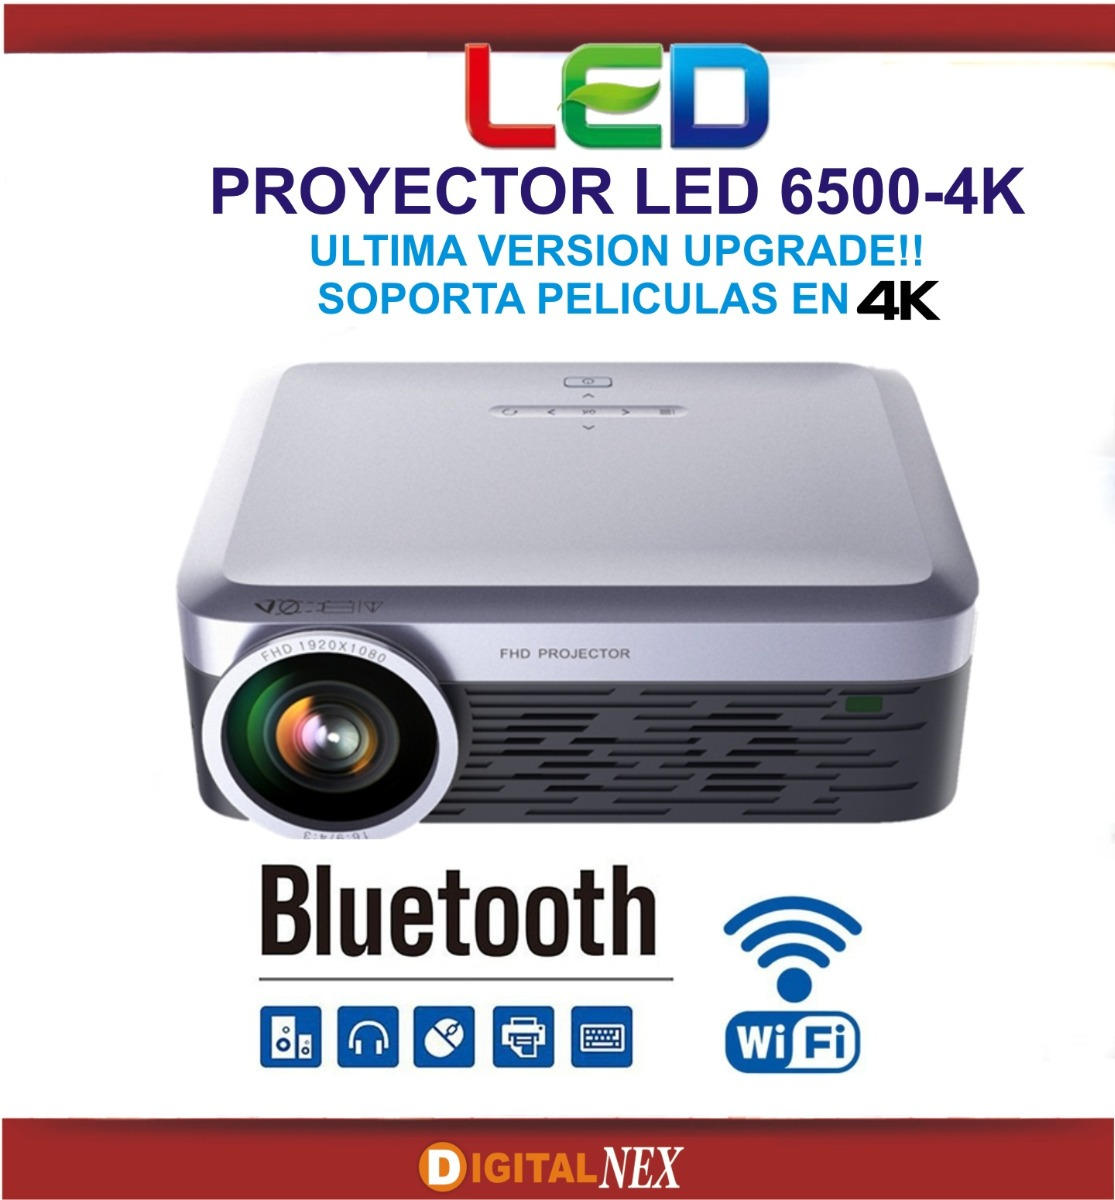 https://http2.mlstatic.com/proyector-led-6500-lumens-wifi-android-51-full-hd-nativo-D_NQ_NP_956137-MLA30991686823_062019-F.jpg